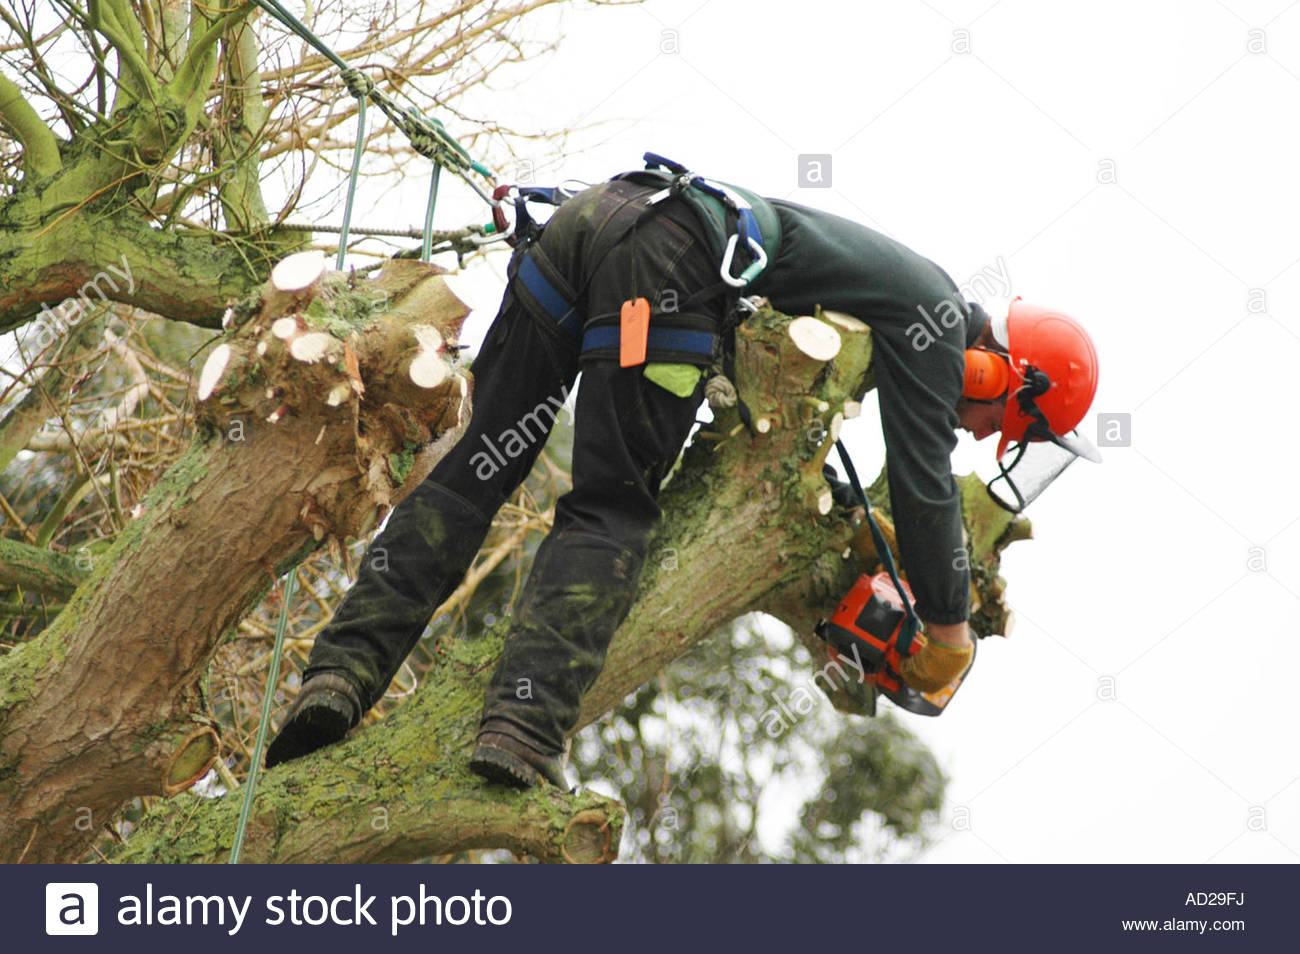 Tree surgeon, with chainsaw, leaning over in Weeping Willow tree Salix x chrysocoma Tristis January England Stock Photo